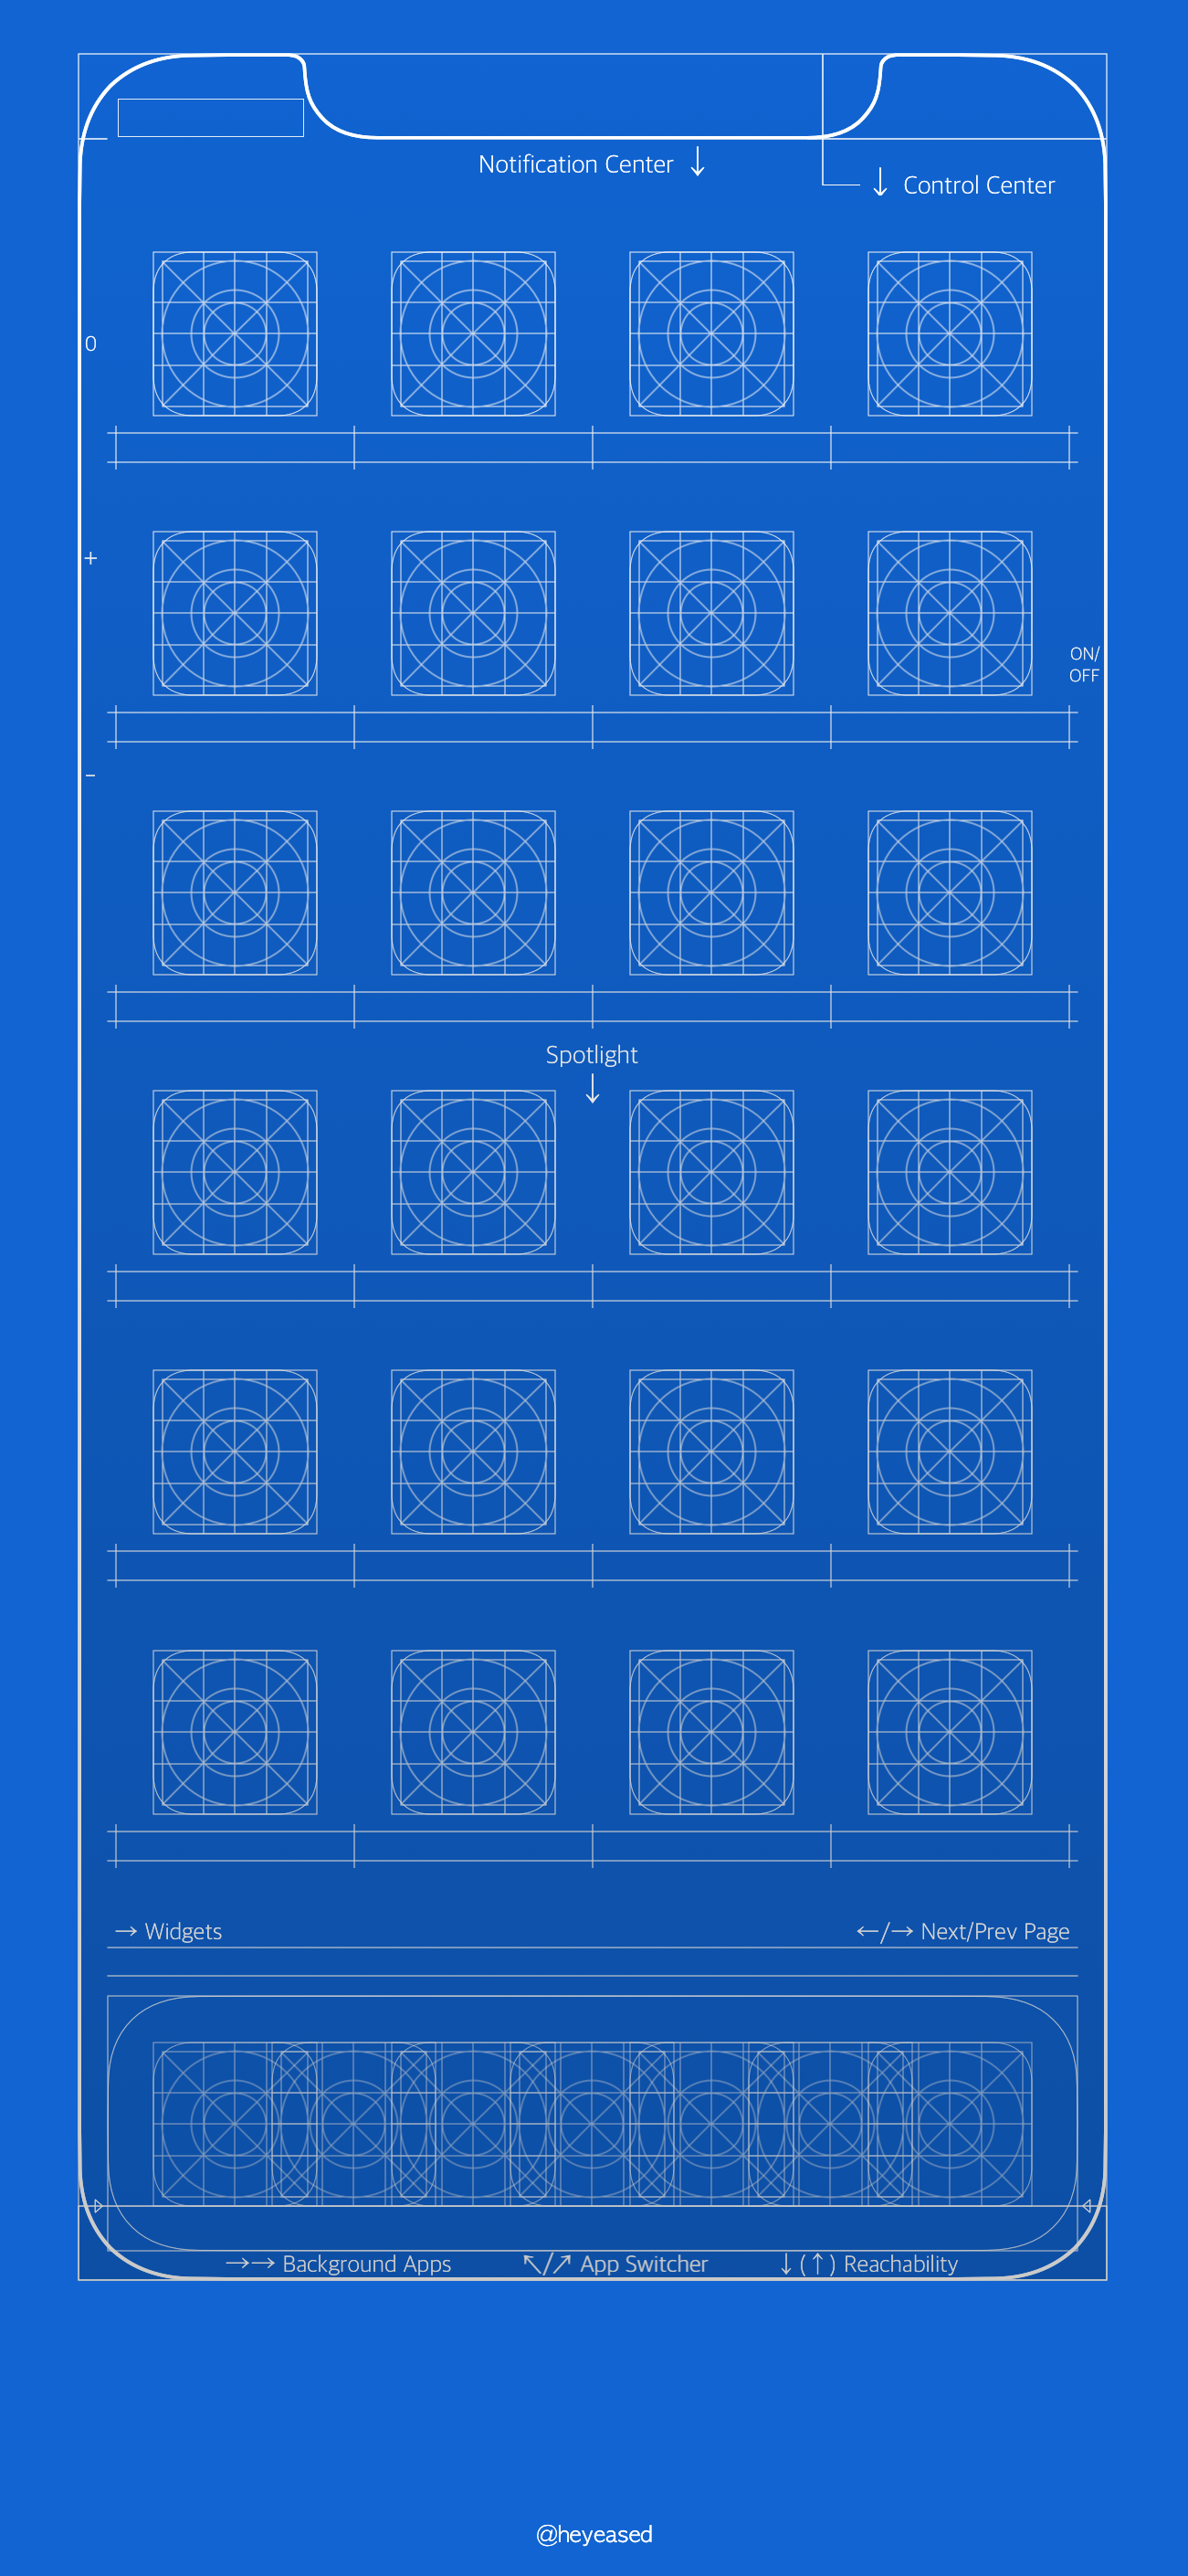 Iphone 5 Block Diagram Grid And Blueprint Wallpapers For Download Home Screen